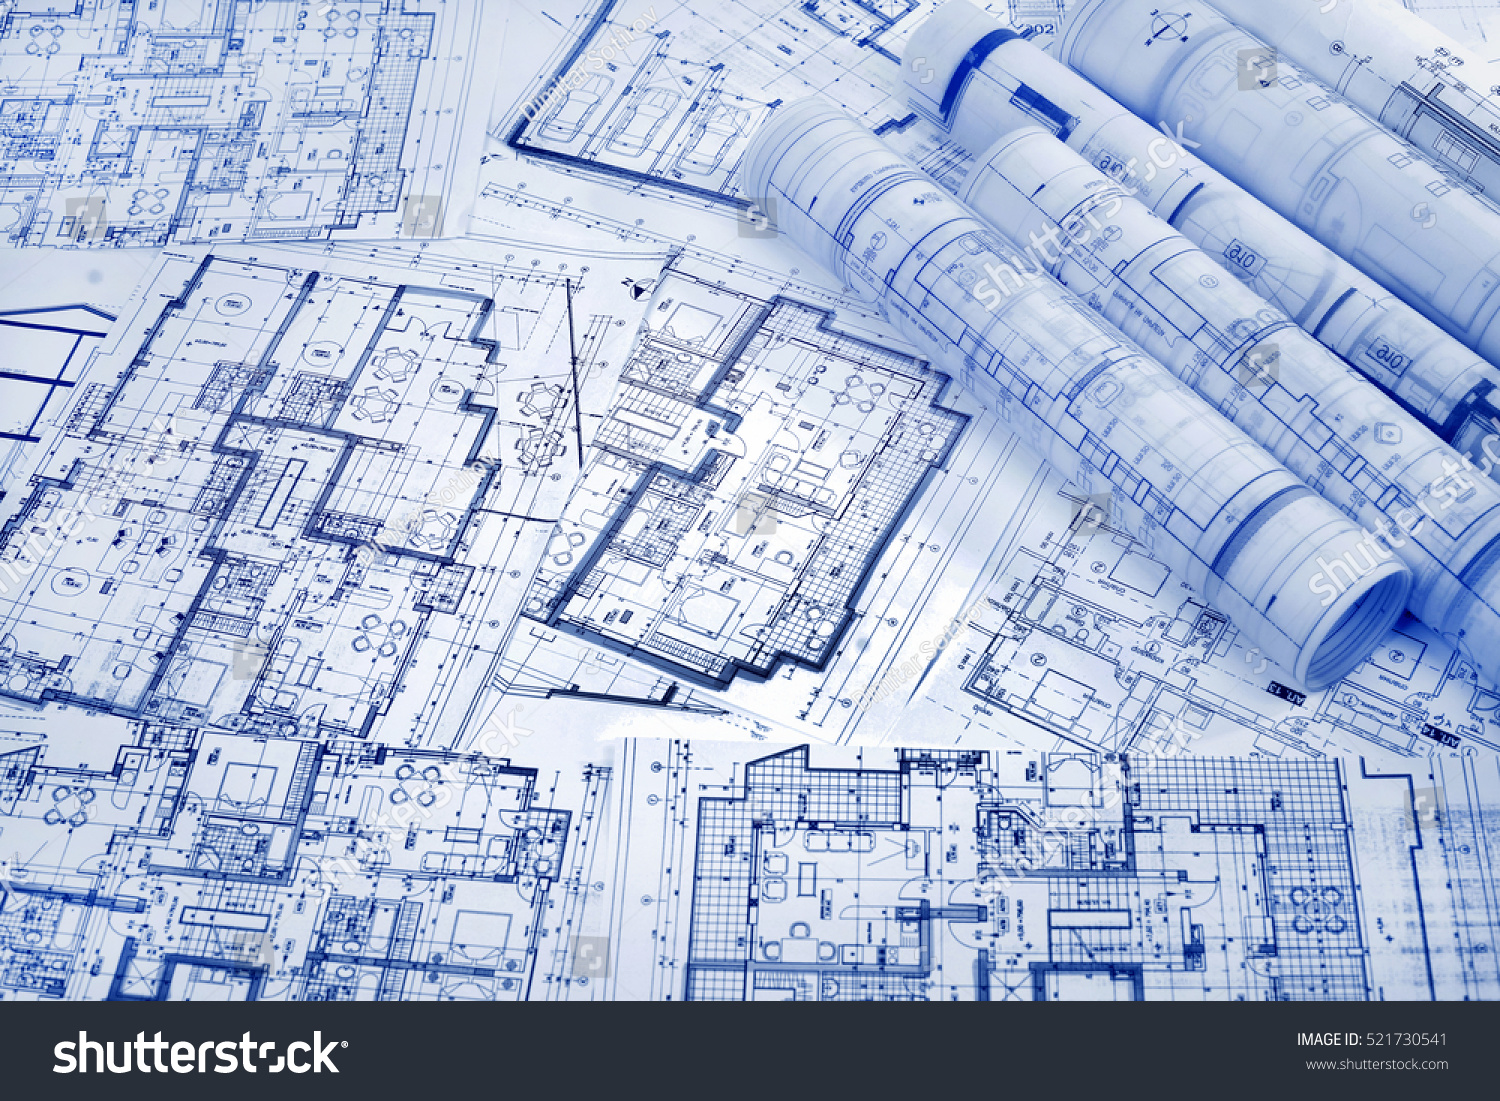 stock-photo-architectural-project-521730541